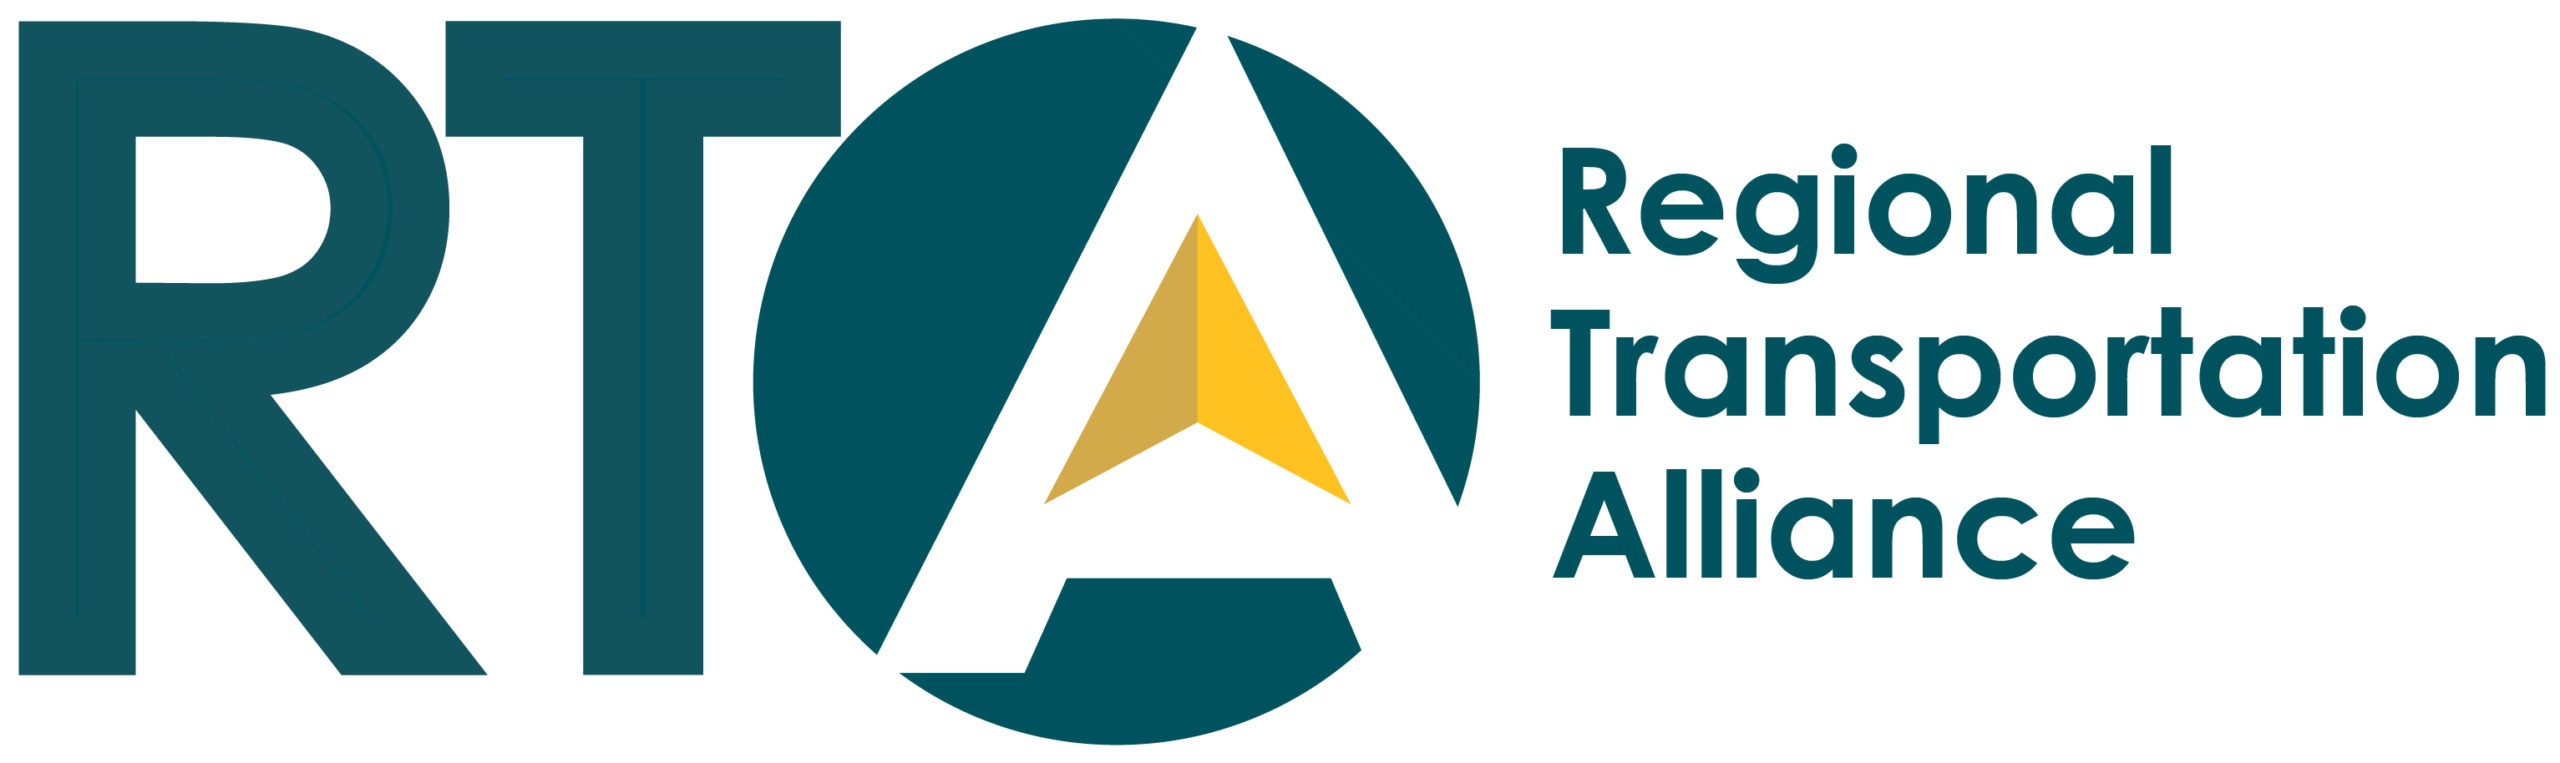 Regional Transportation Alliance